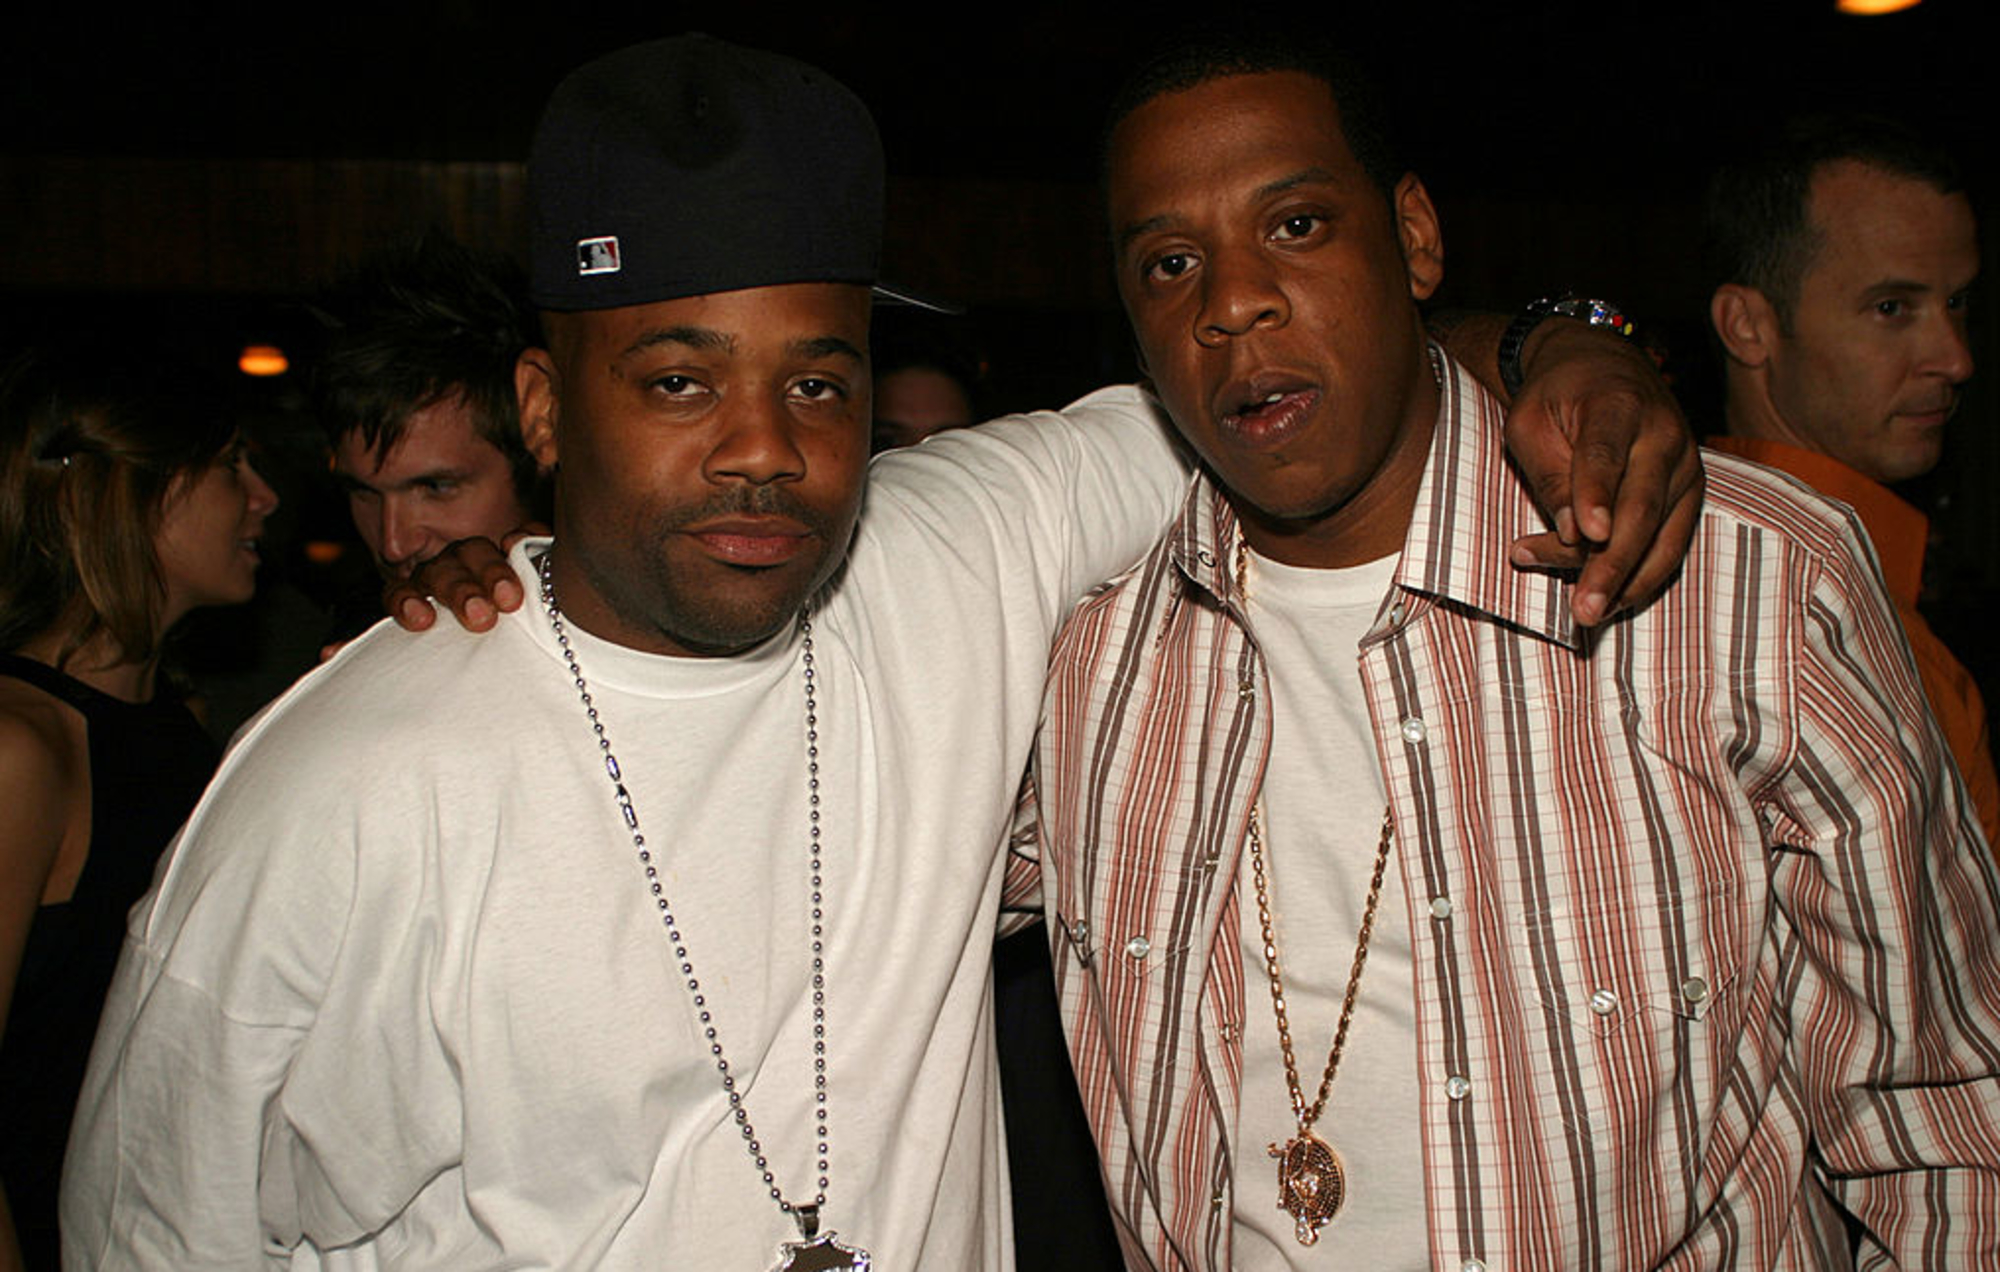 Roc-A-Fella sues Damon Dash over attempted sale of JAY-Z's 'Reasonable Doubt' as an NFT